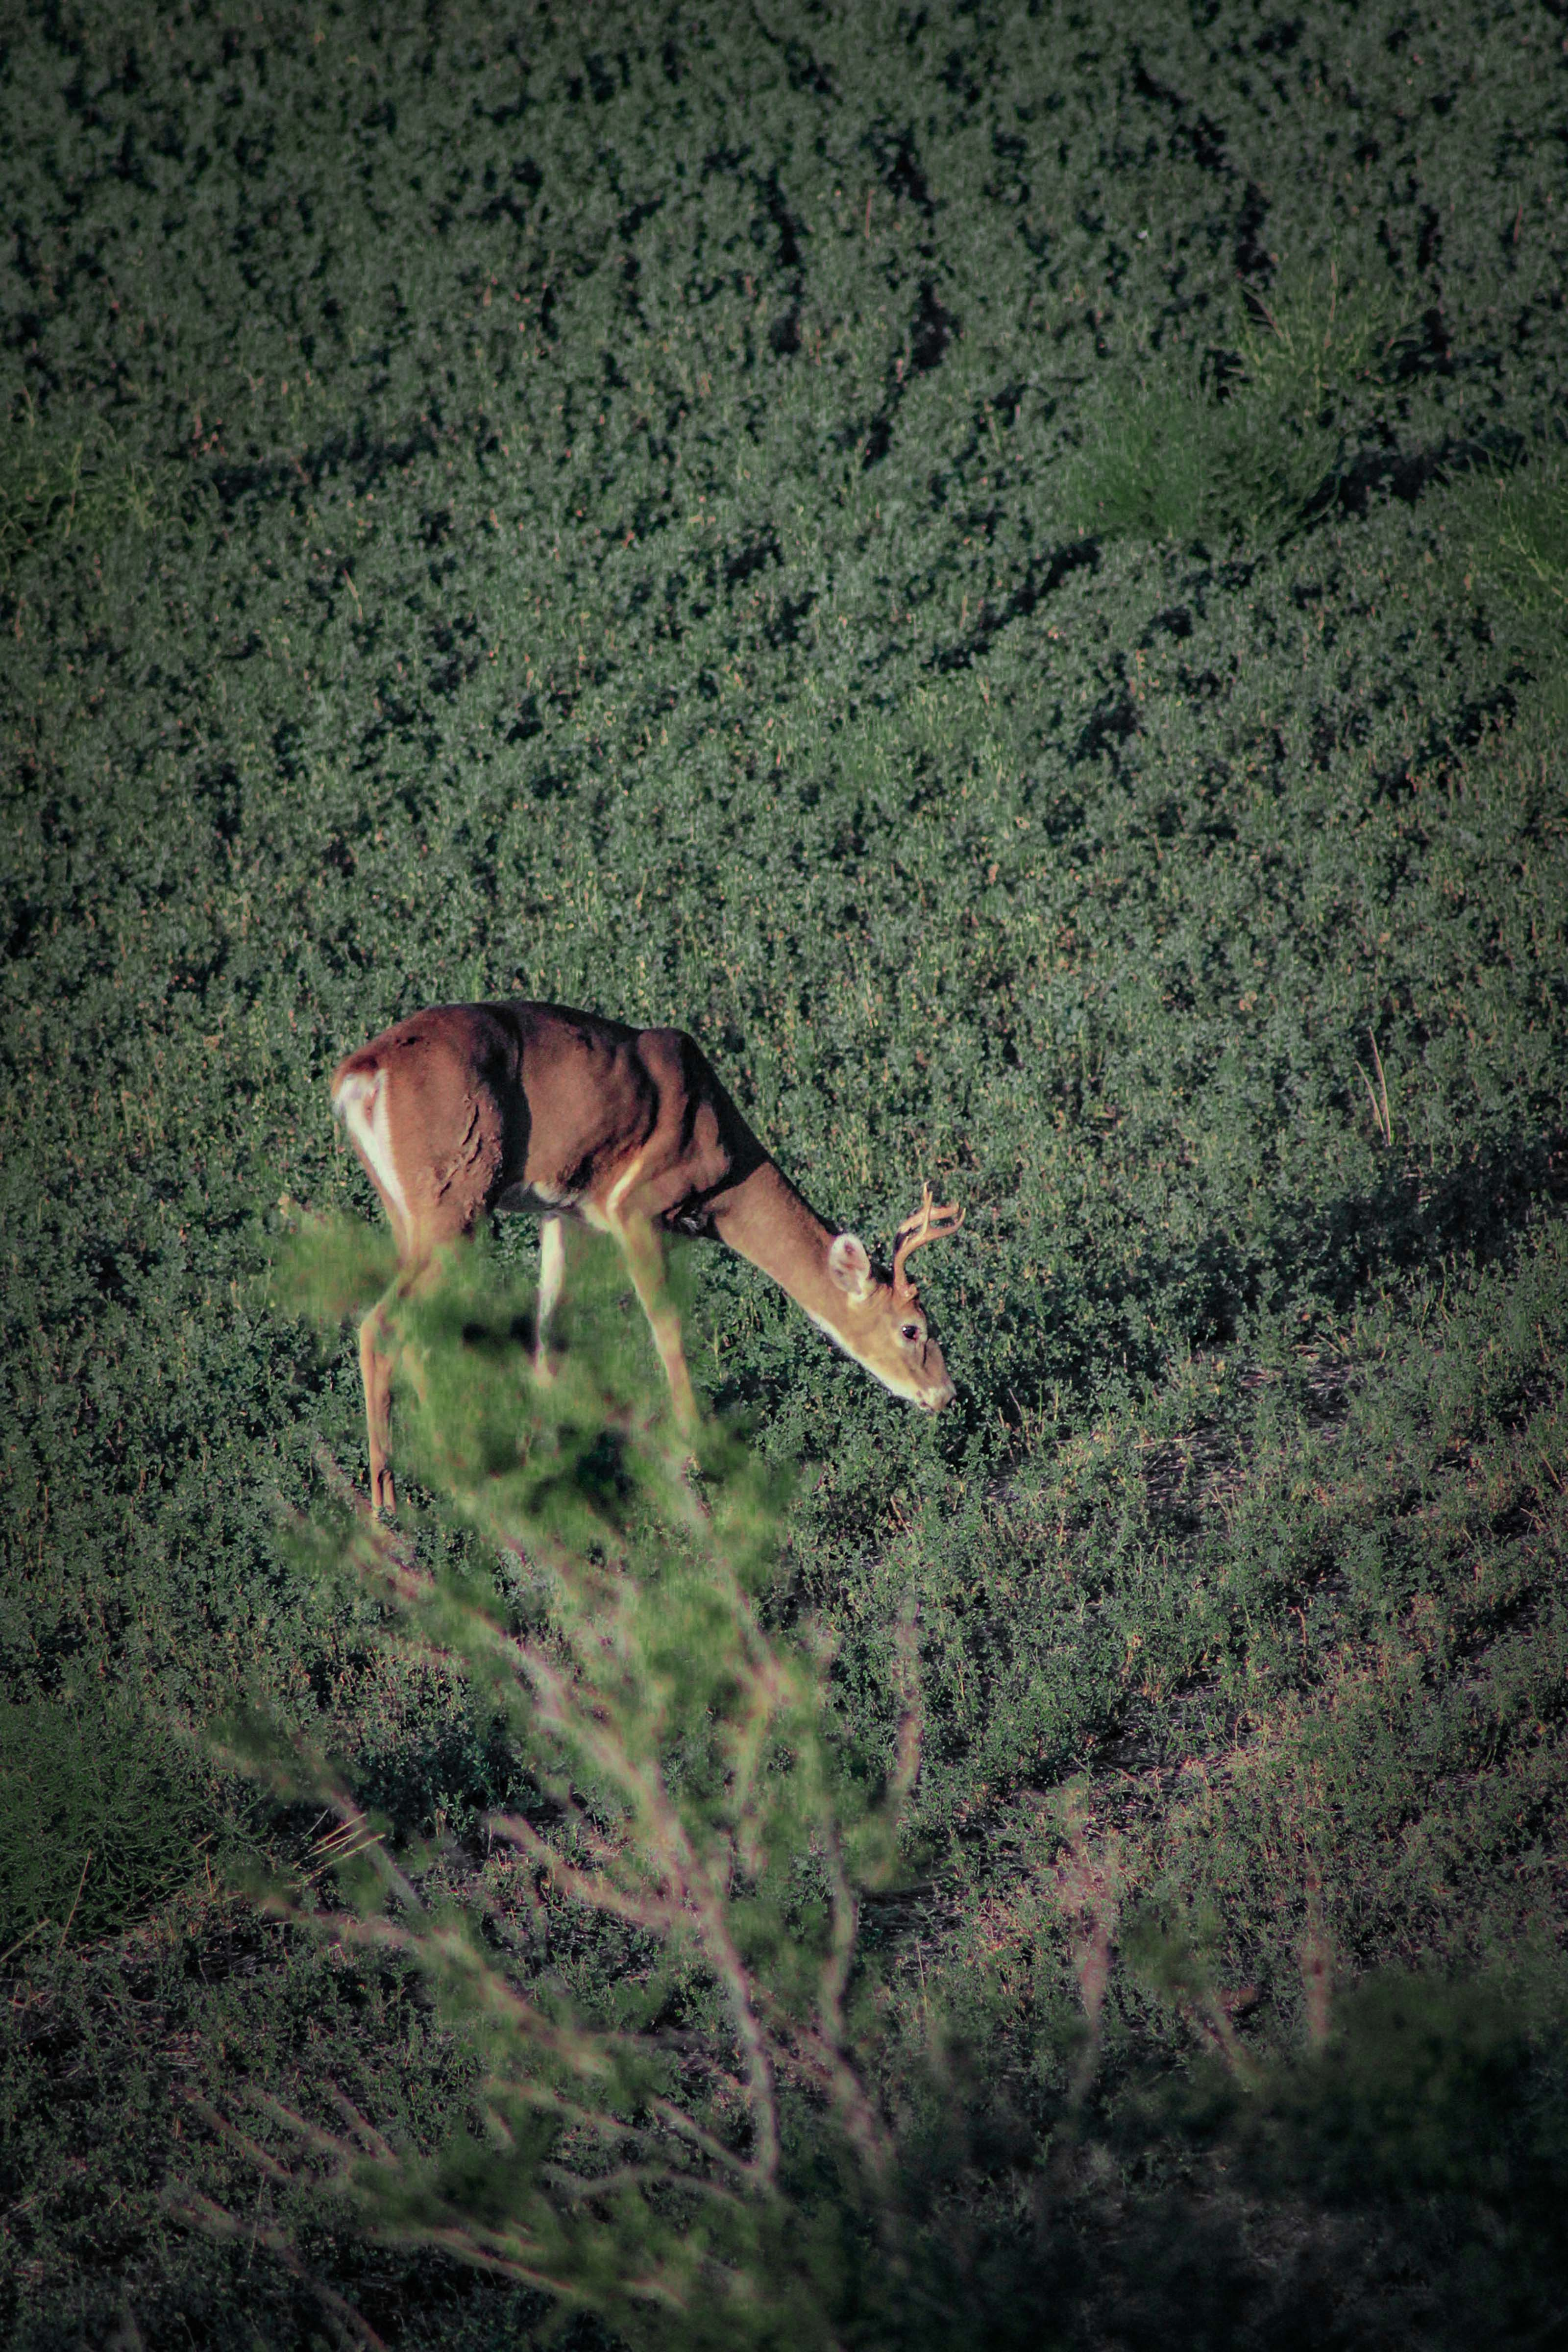 When bowhunting from a treestand that's roughly 20 feet high and shooting at deer 15 yards or more away, bowhunters might need to aim slightly lower than they would when shooting from ground level. Photo Credit: Tyler Ridenour